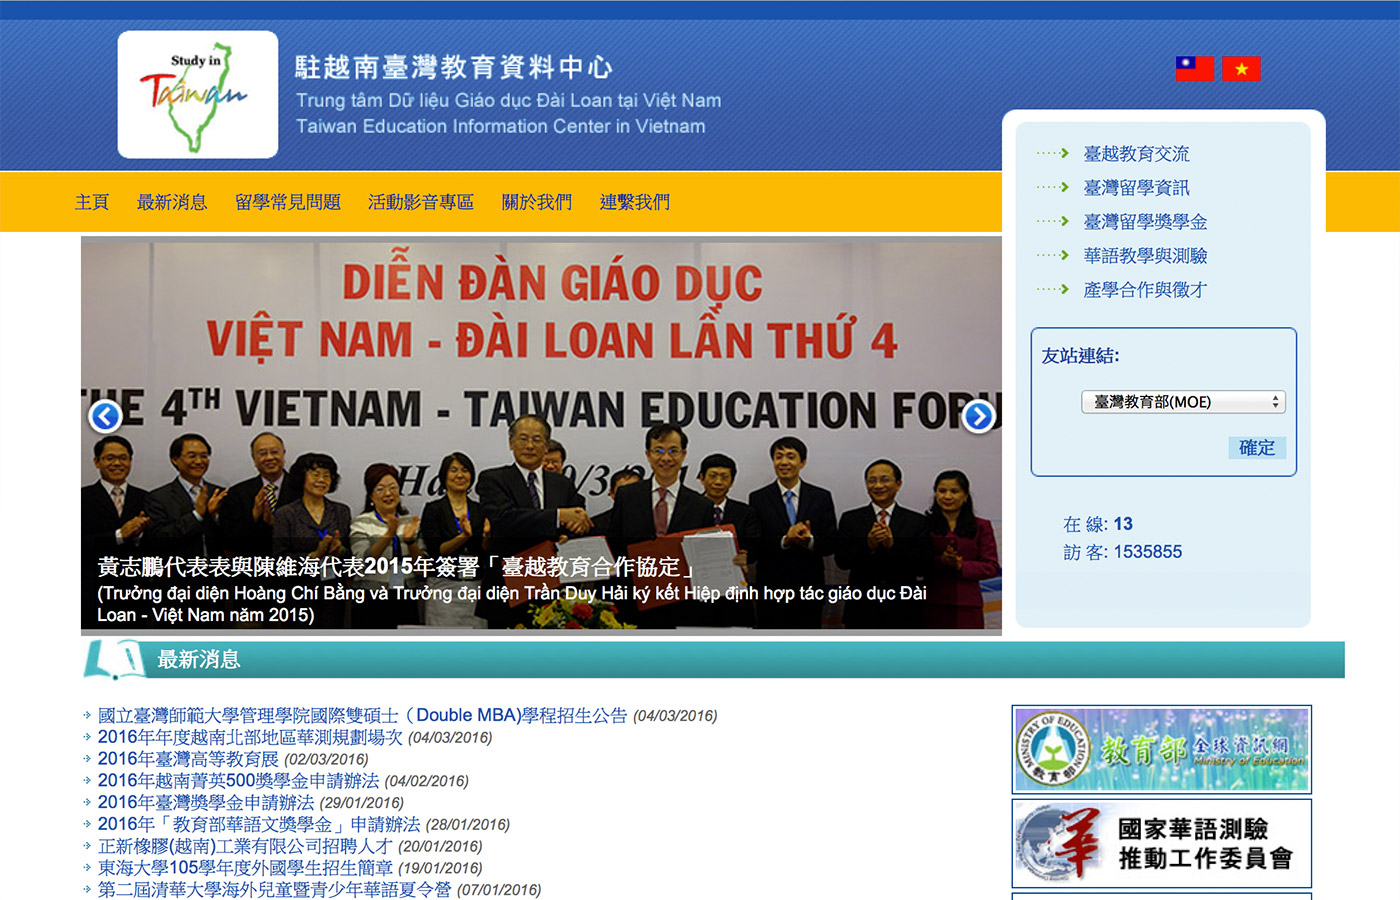 Taiwan Education Information Center in Vietnam